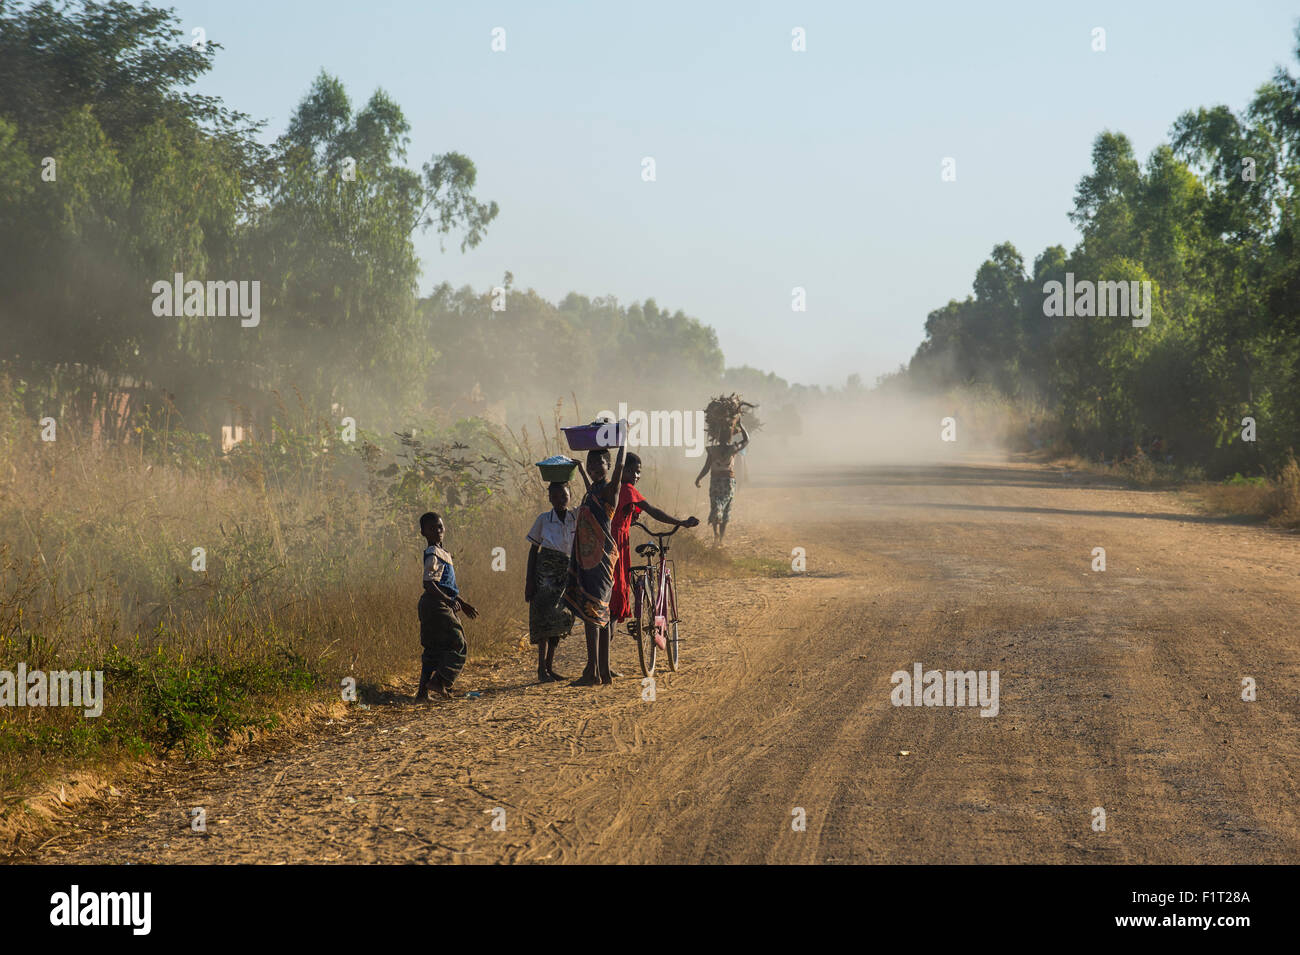 Dusty road, Mount Mulanje, Malawi, Africa - Stock Image